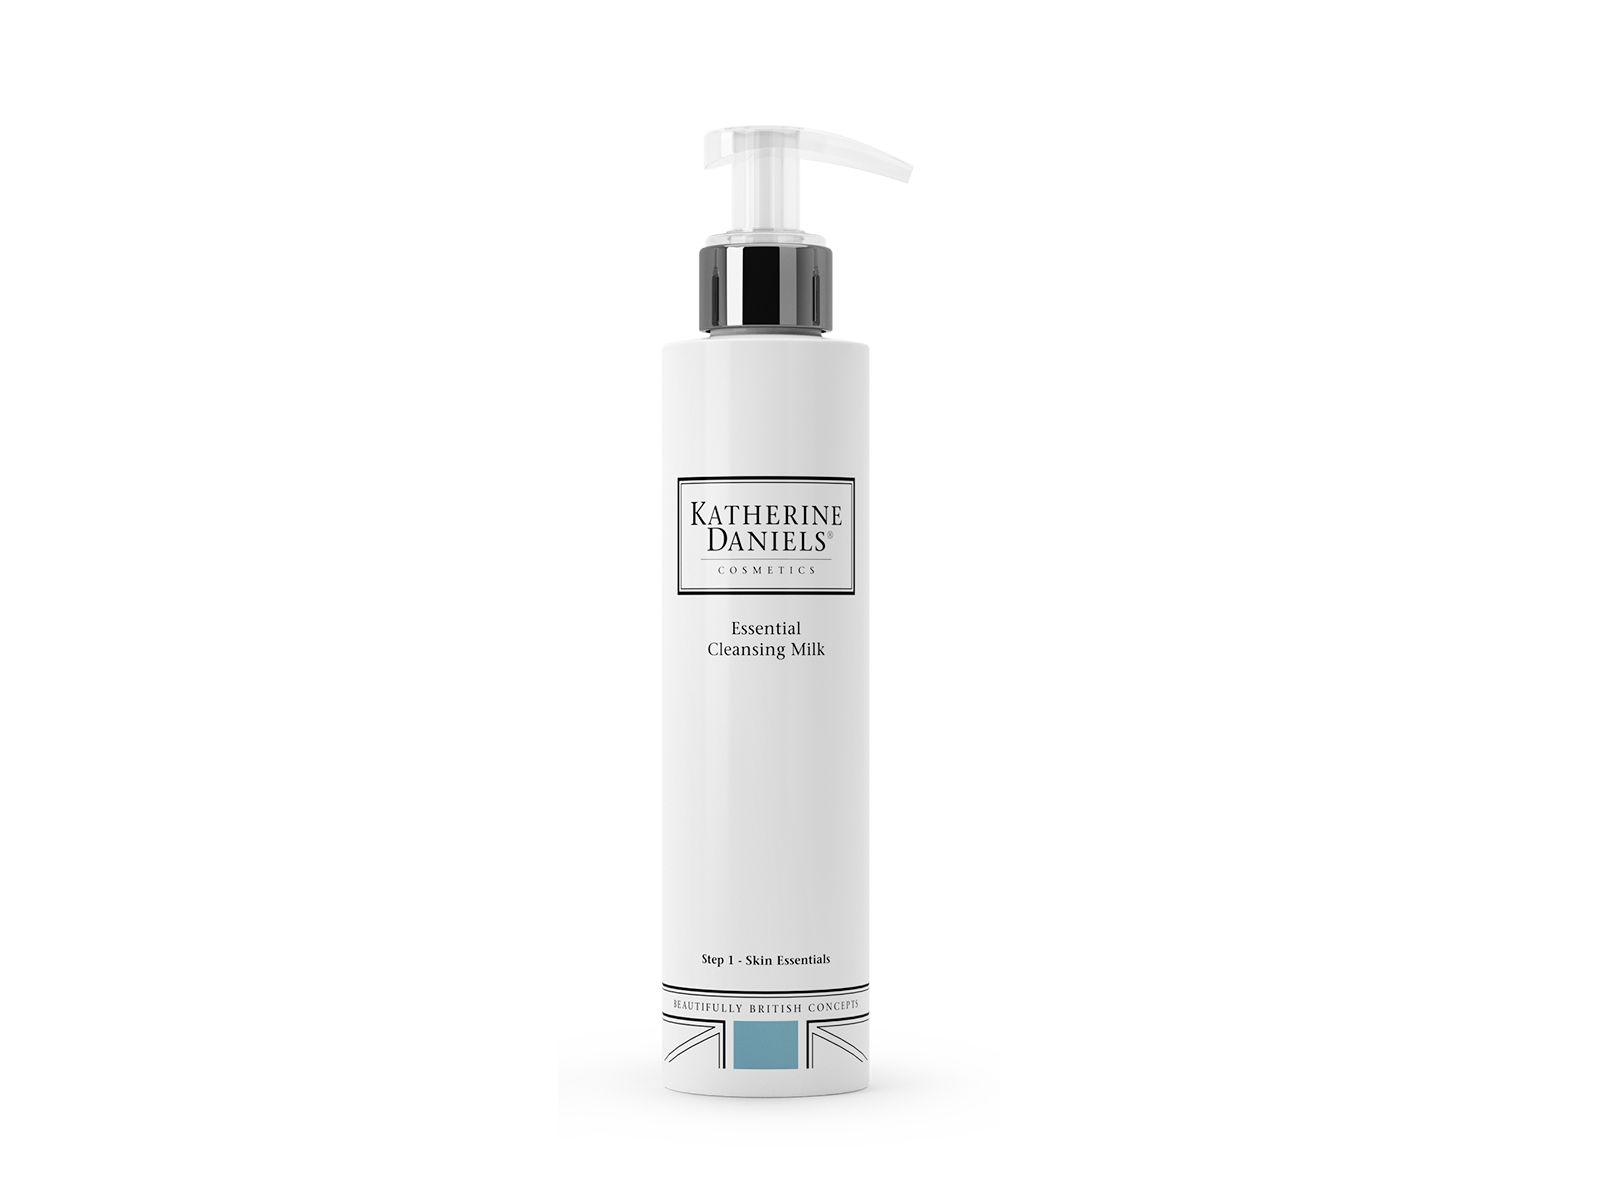 HOW TO USE - Apply 2-3 pumps of milk to your face and neck with your fingertips. Gently massage in circular movements, avoiding the eye area, to lift away make-up and impurities. Remove with a damp Katherine Daniels Micro Cloth. Repeat. Now use your Katherine Daniels Essential Toning Lotion.